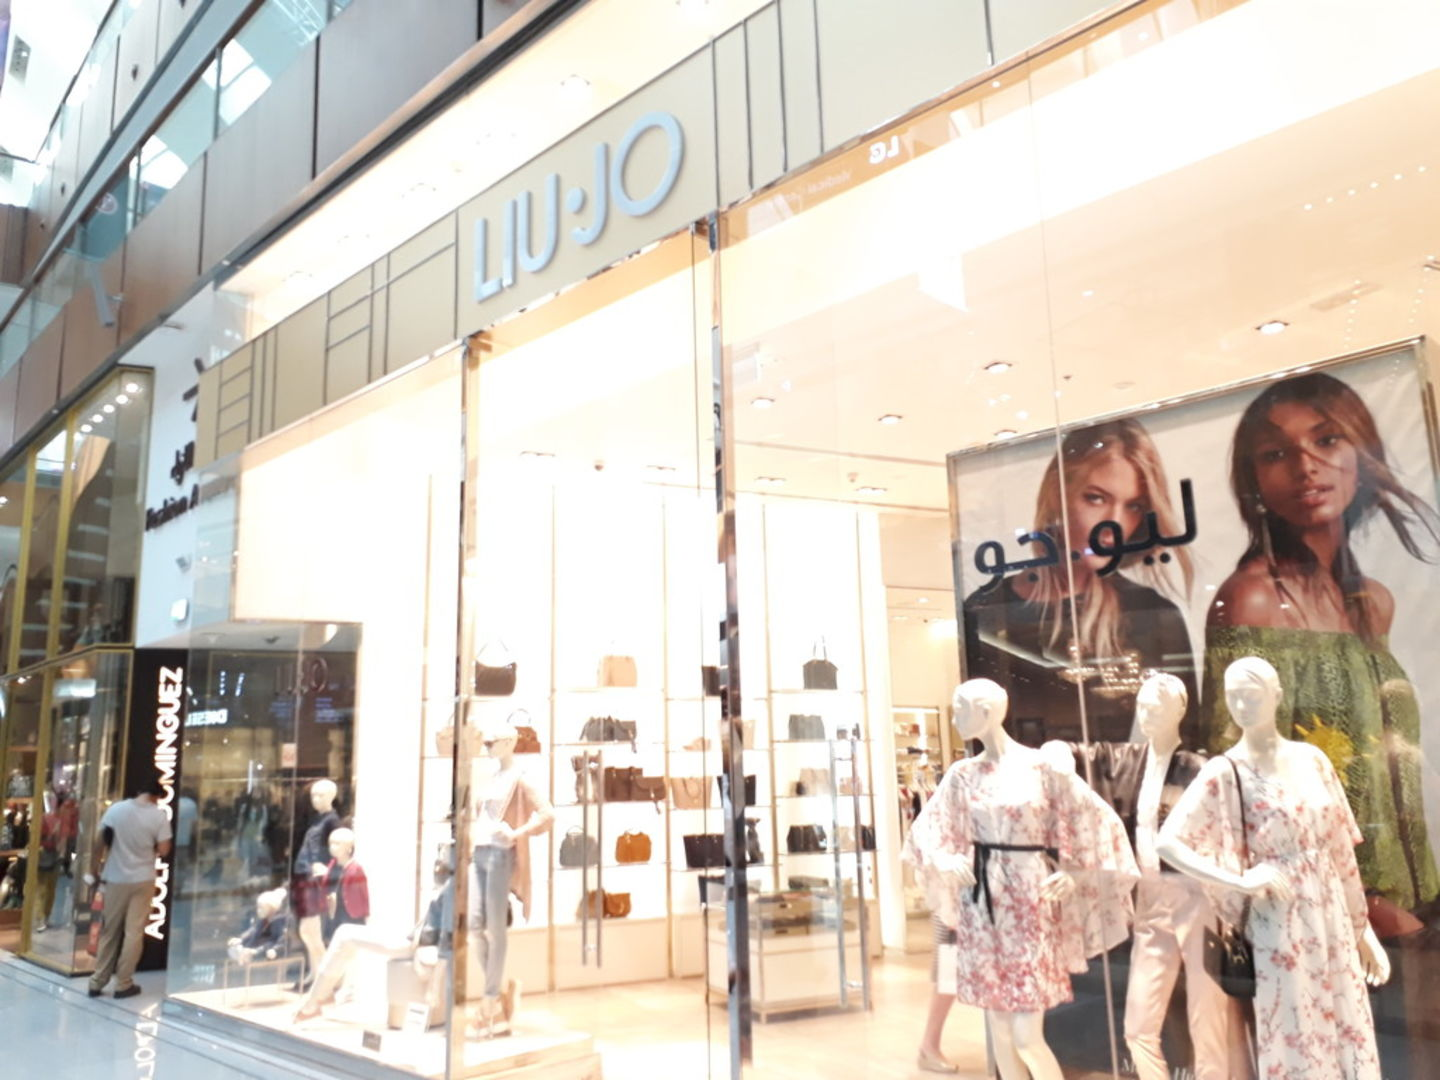 HiDubai-business-liu-jo-shopping-apparel-burj-khalifa-dubai-2